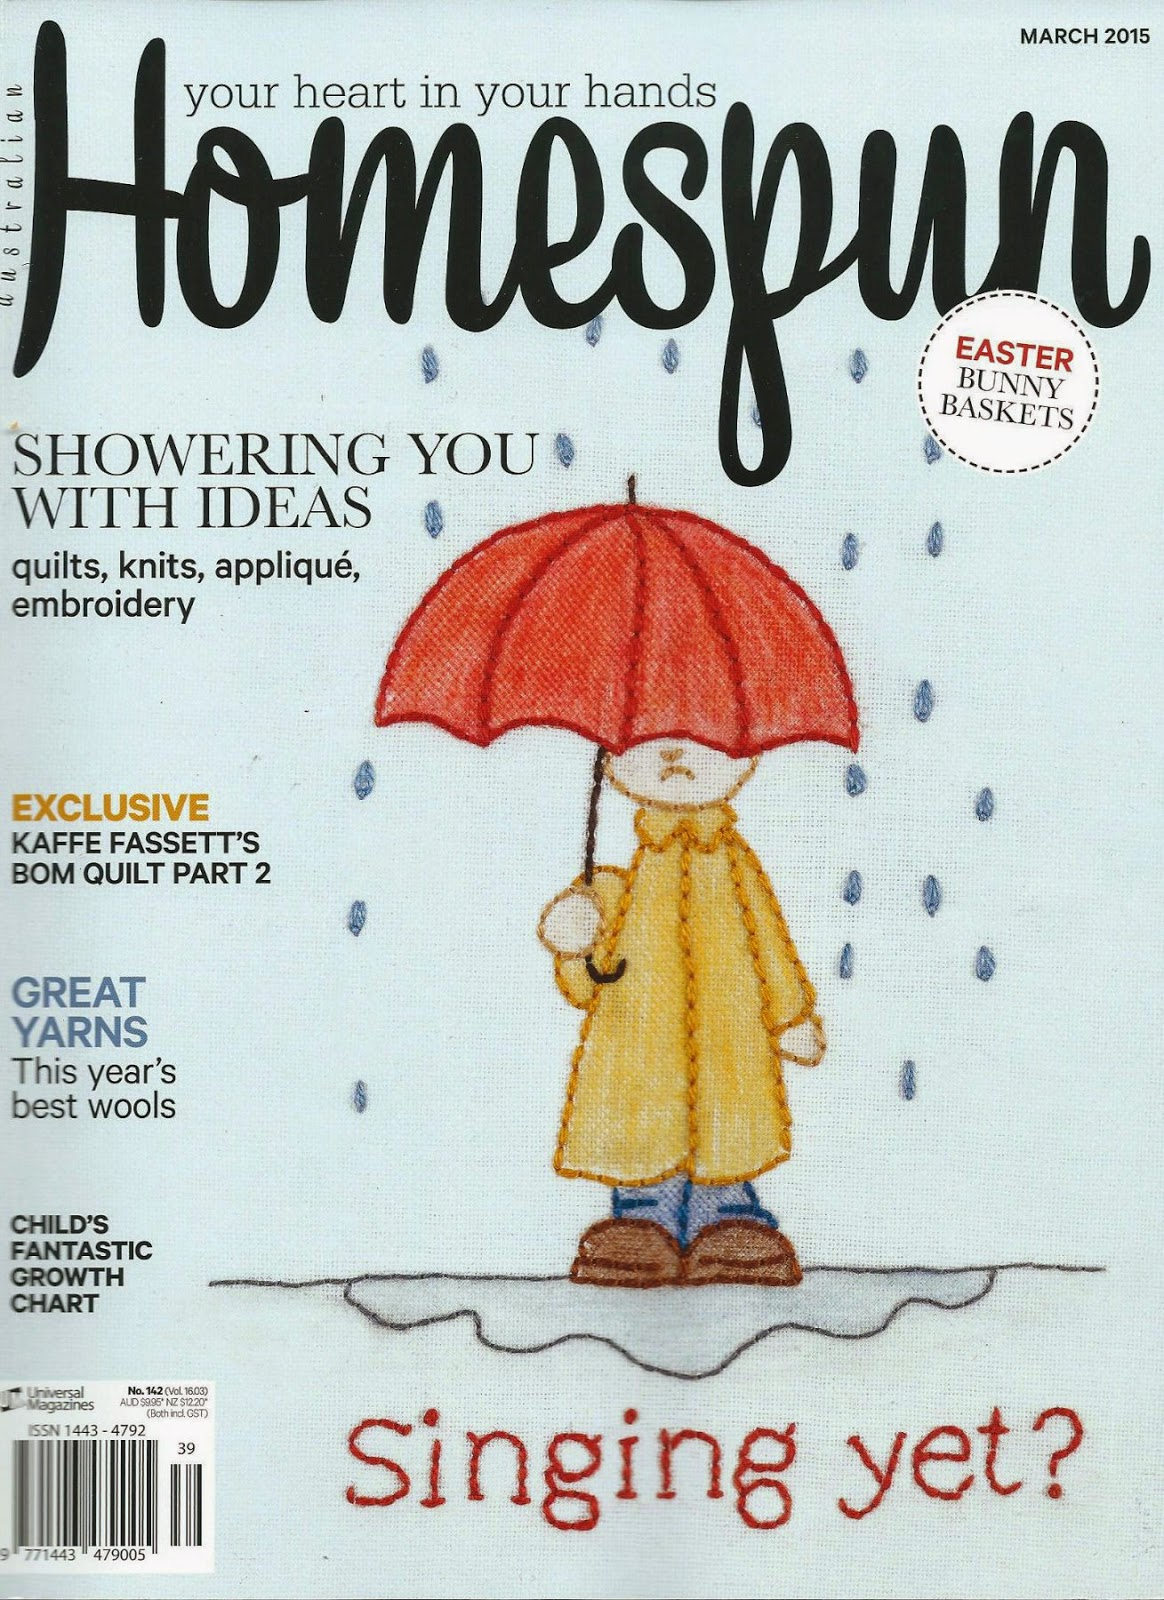 Seen in Homespun March 2015